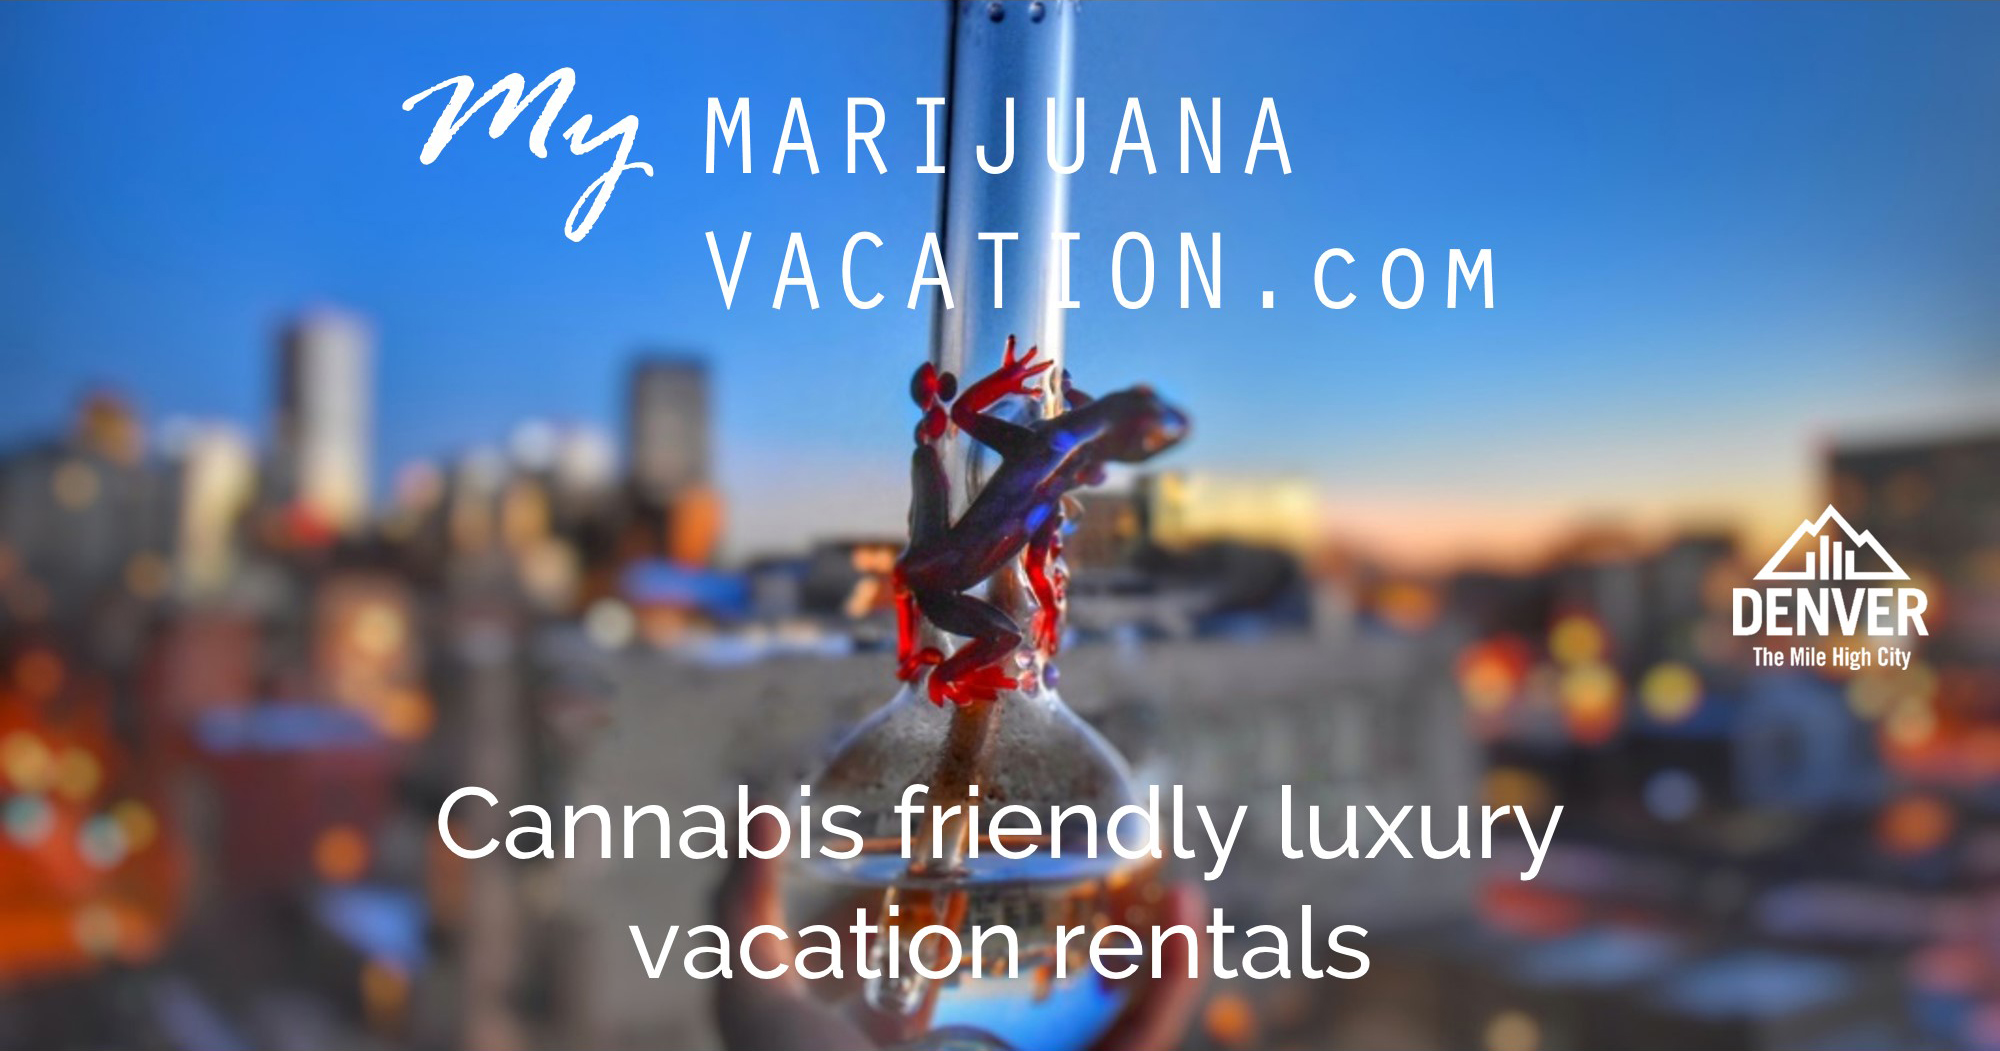 My Marijuana Vacation | Cannabis Friendly Vacation Rentals